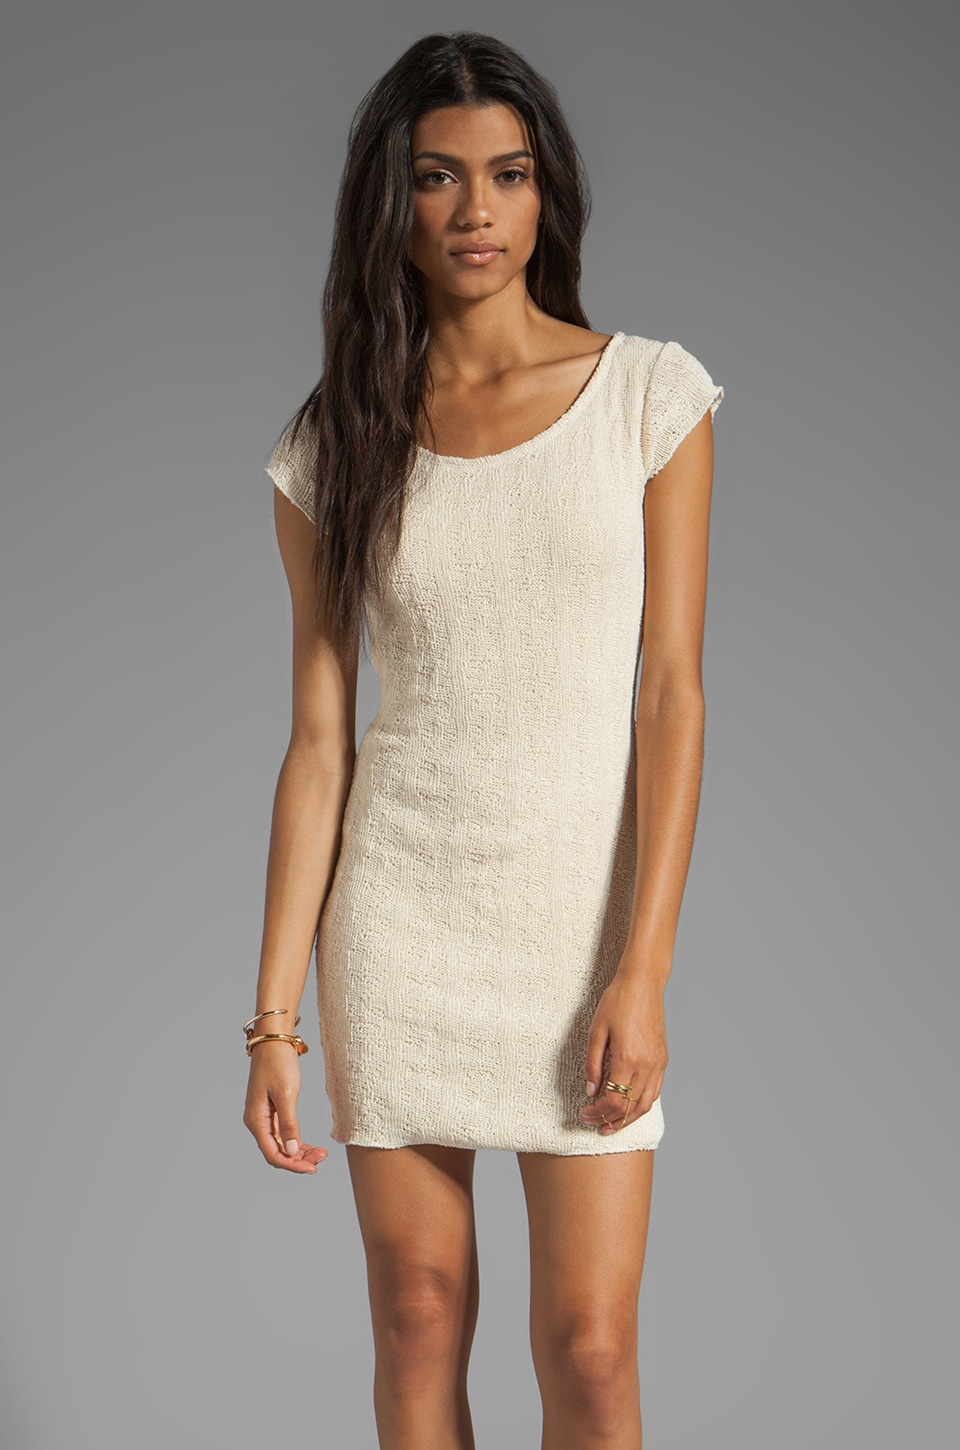 Tylie Tear Away Cap Sleeve Tee Dress in Cream